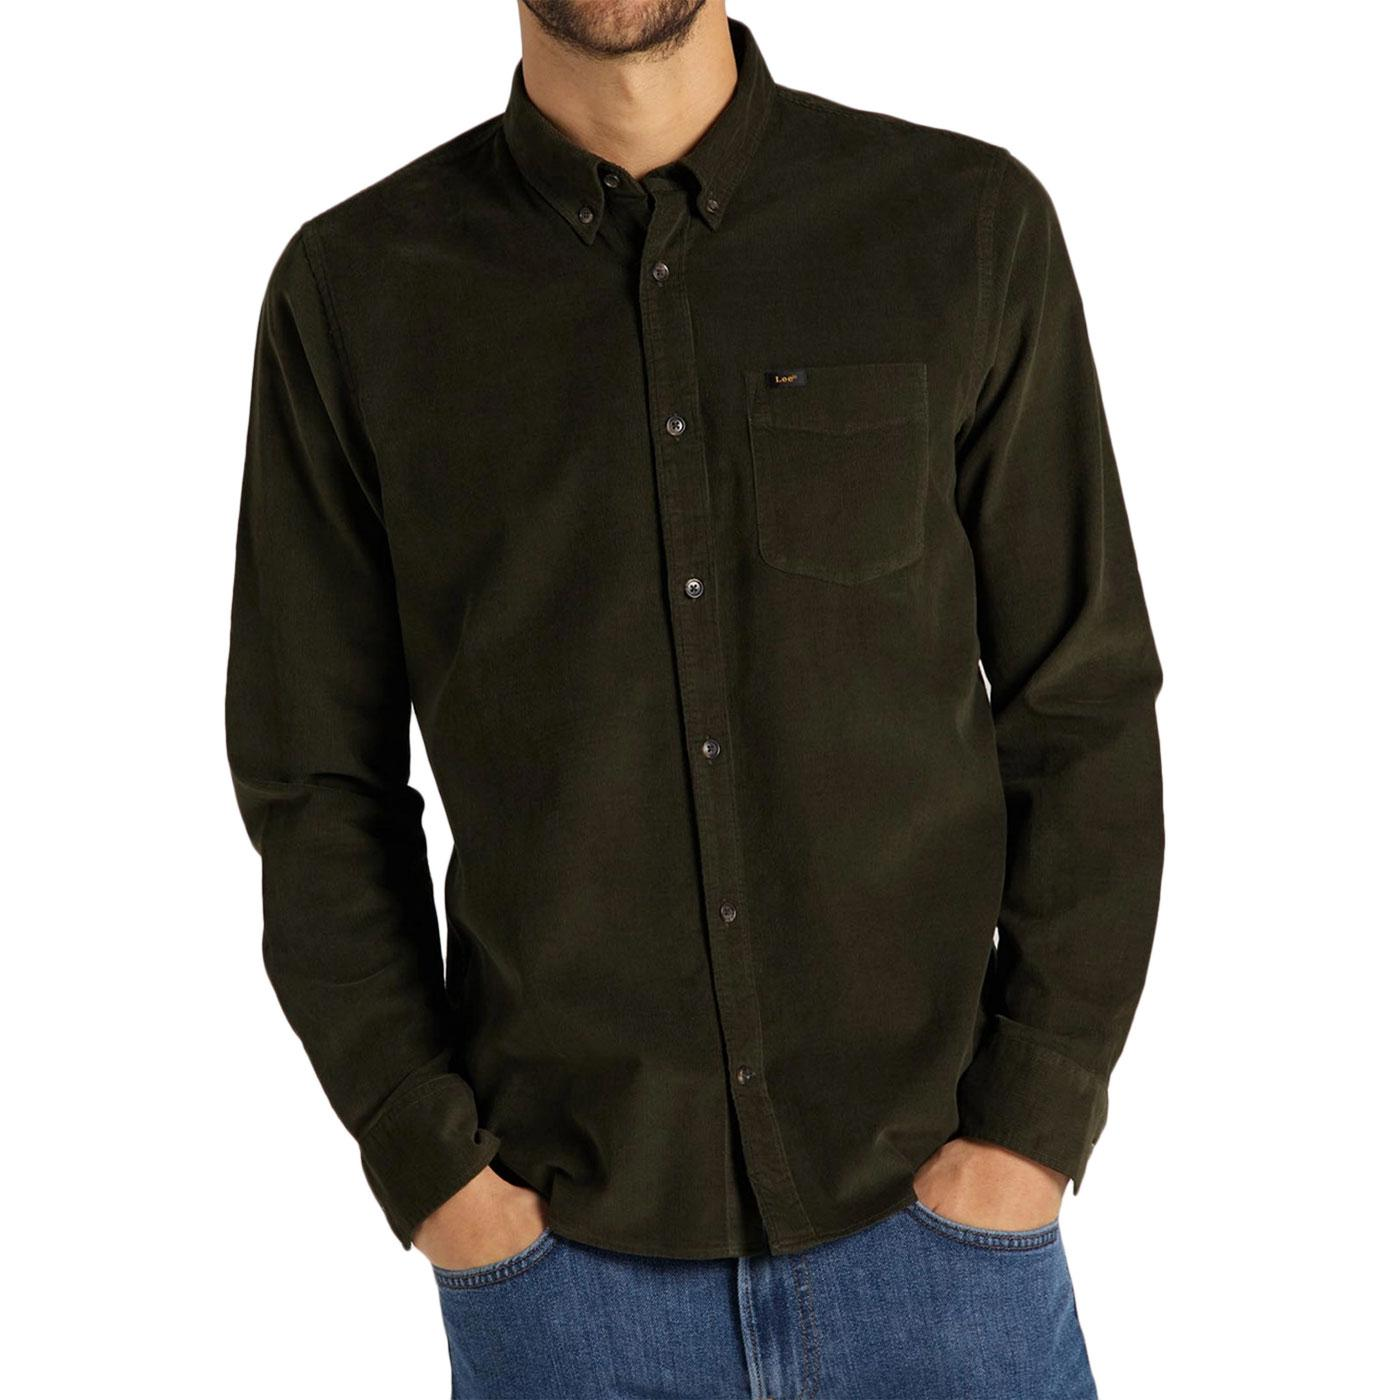 Lee Mod Button Down Cord Shirt (Serpico Green)